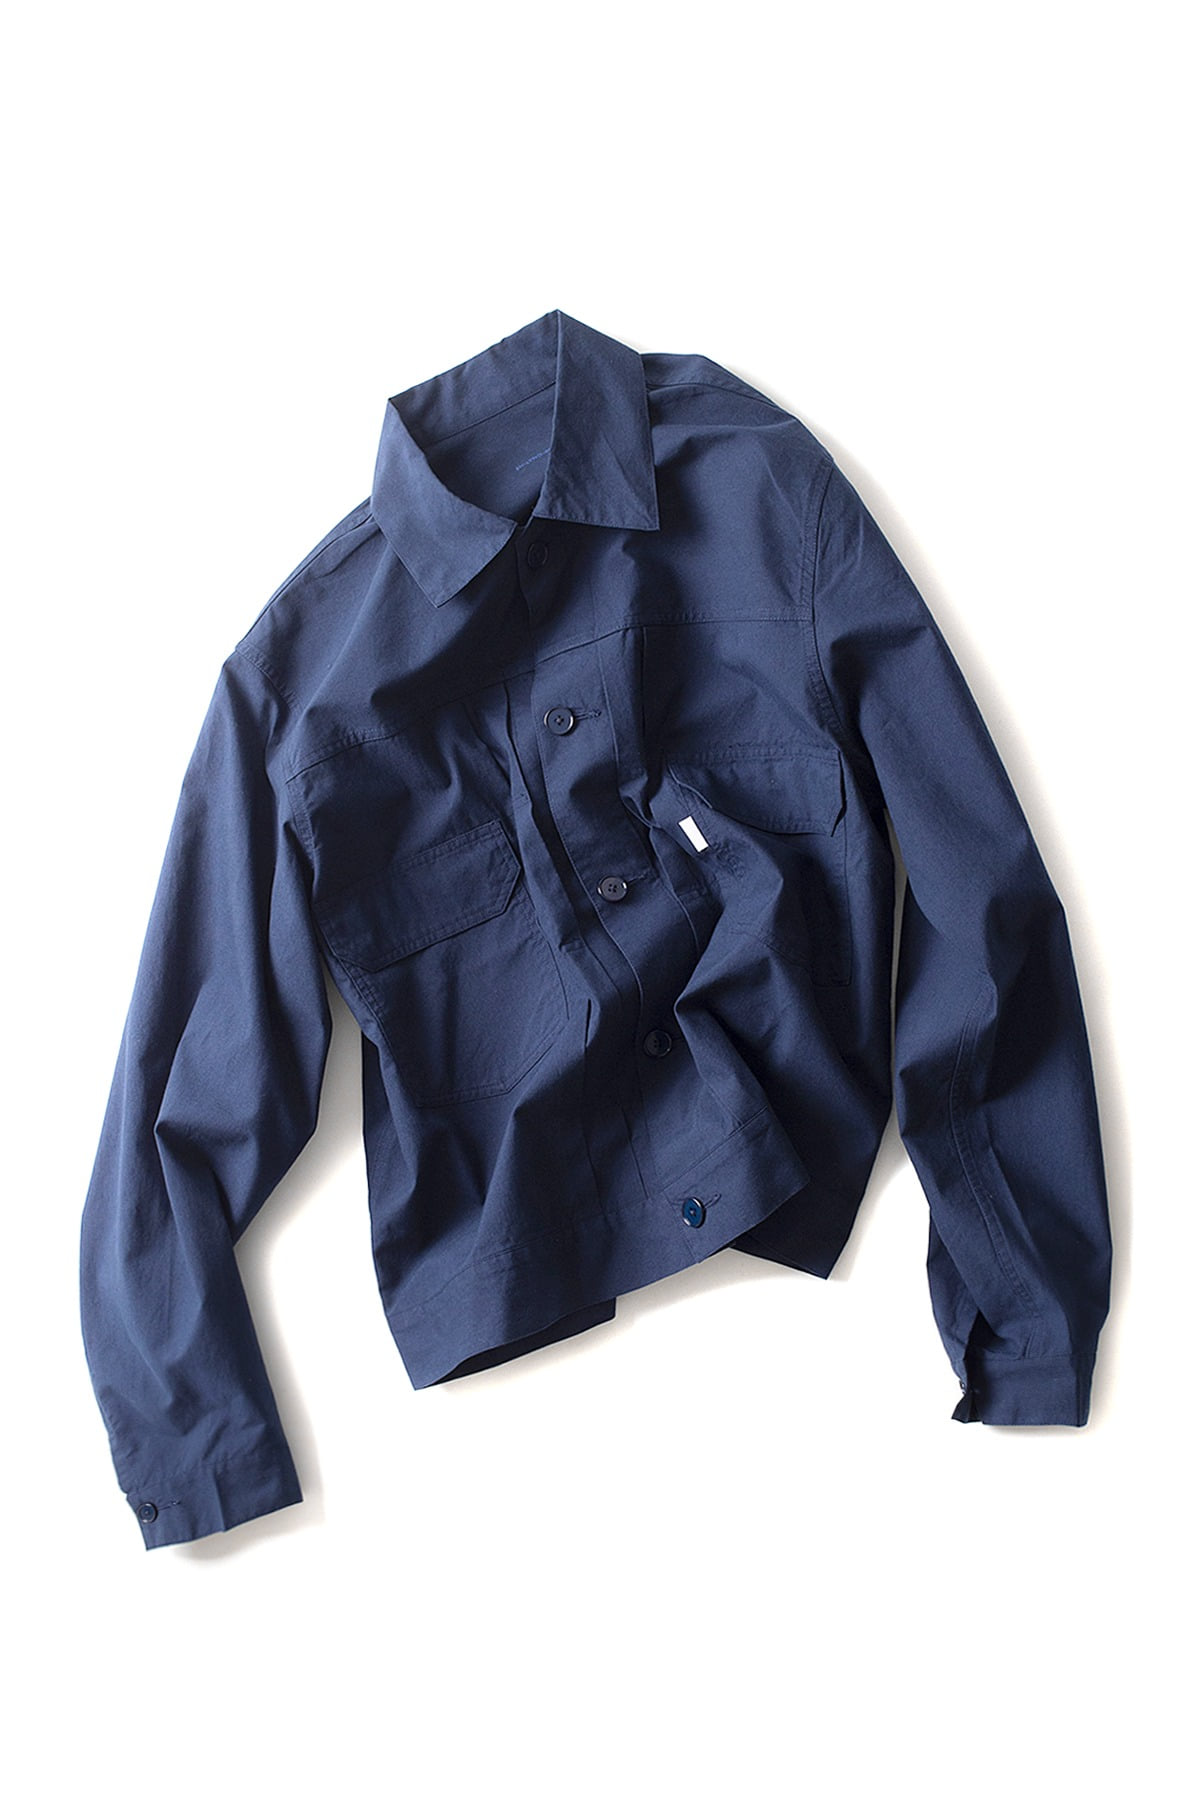 S H : Trucker Shirt (Navy)